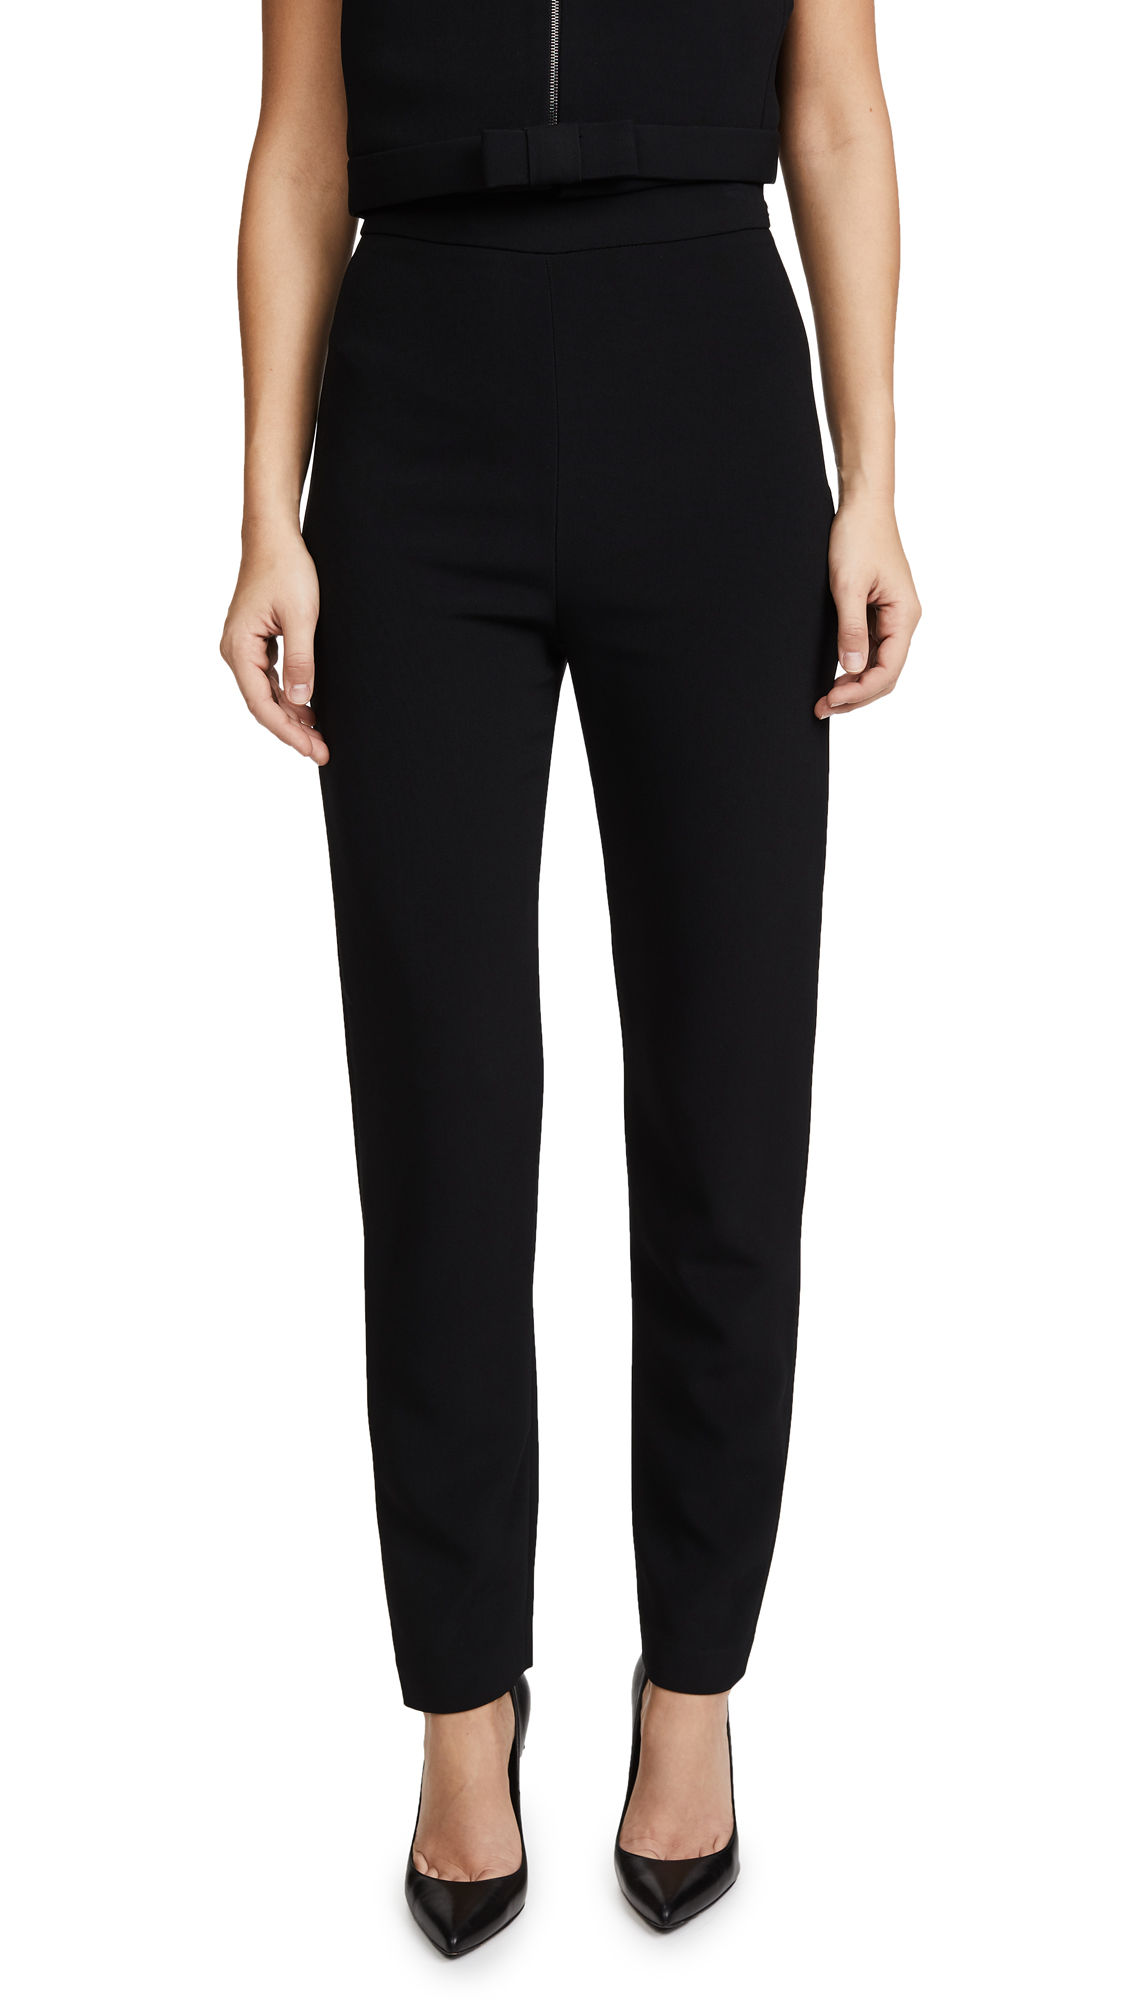 Brandon Maxwell Classic Cigarette Pants - Black